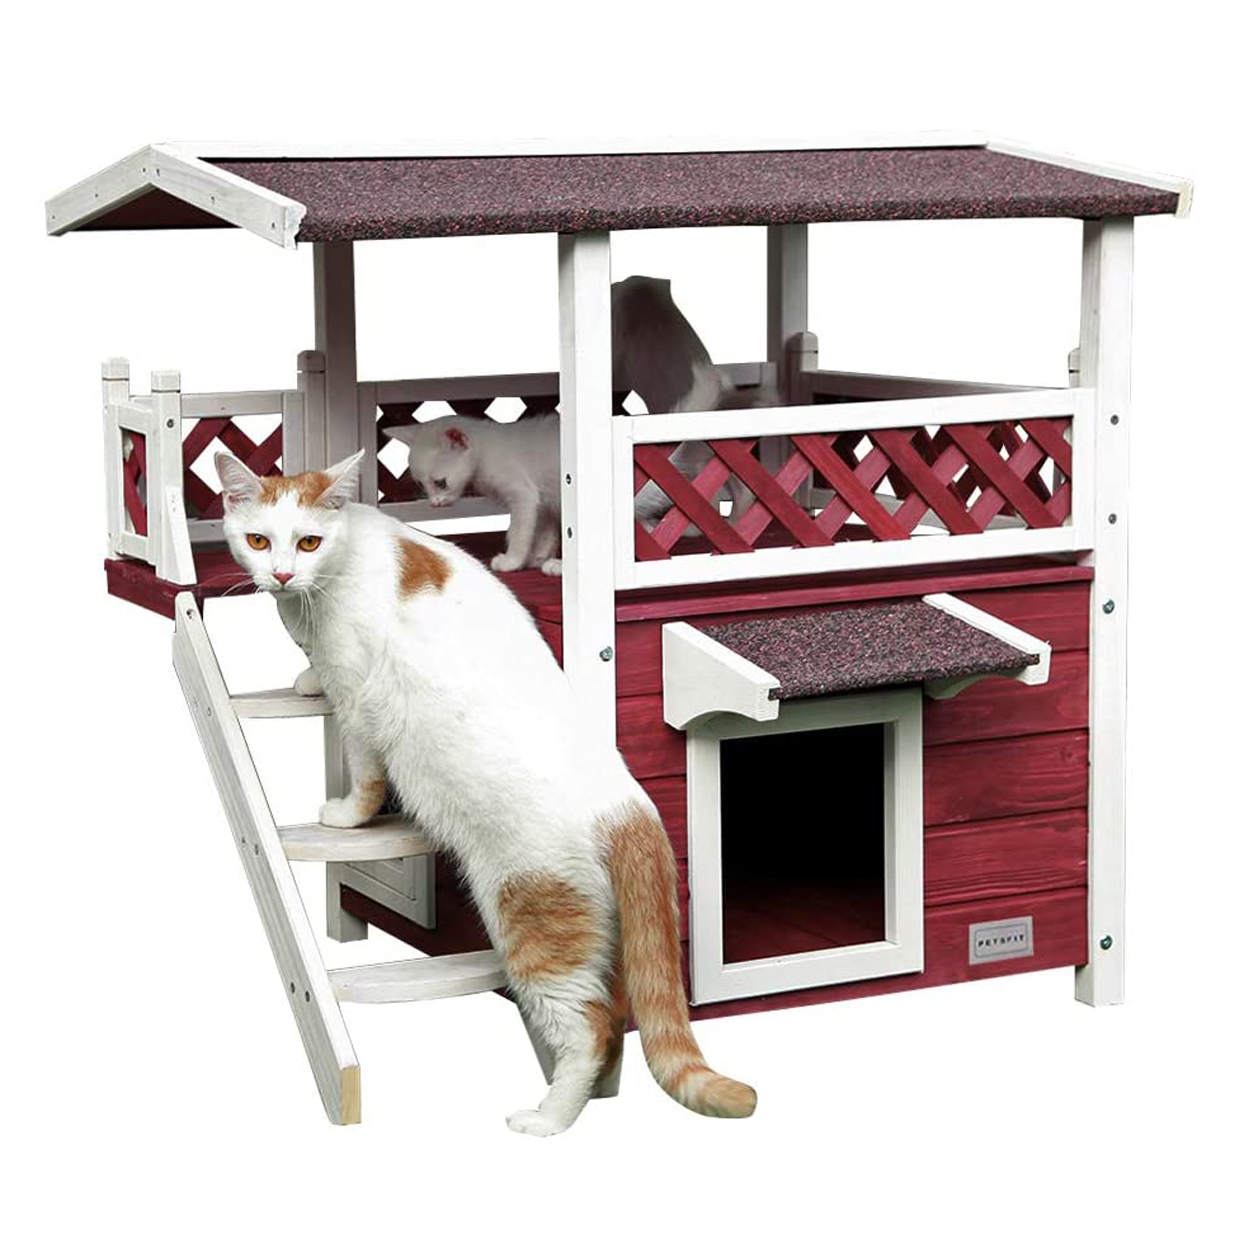 petsfit-outdoor-cat-house-with-escape-door-and-stairs